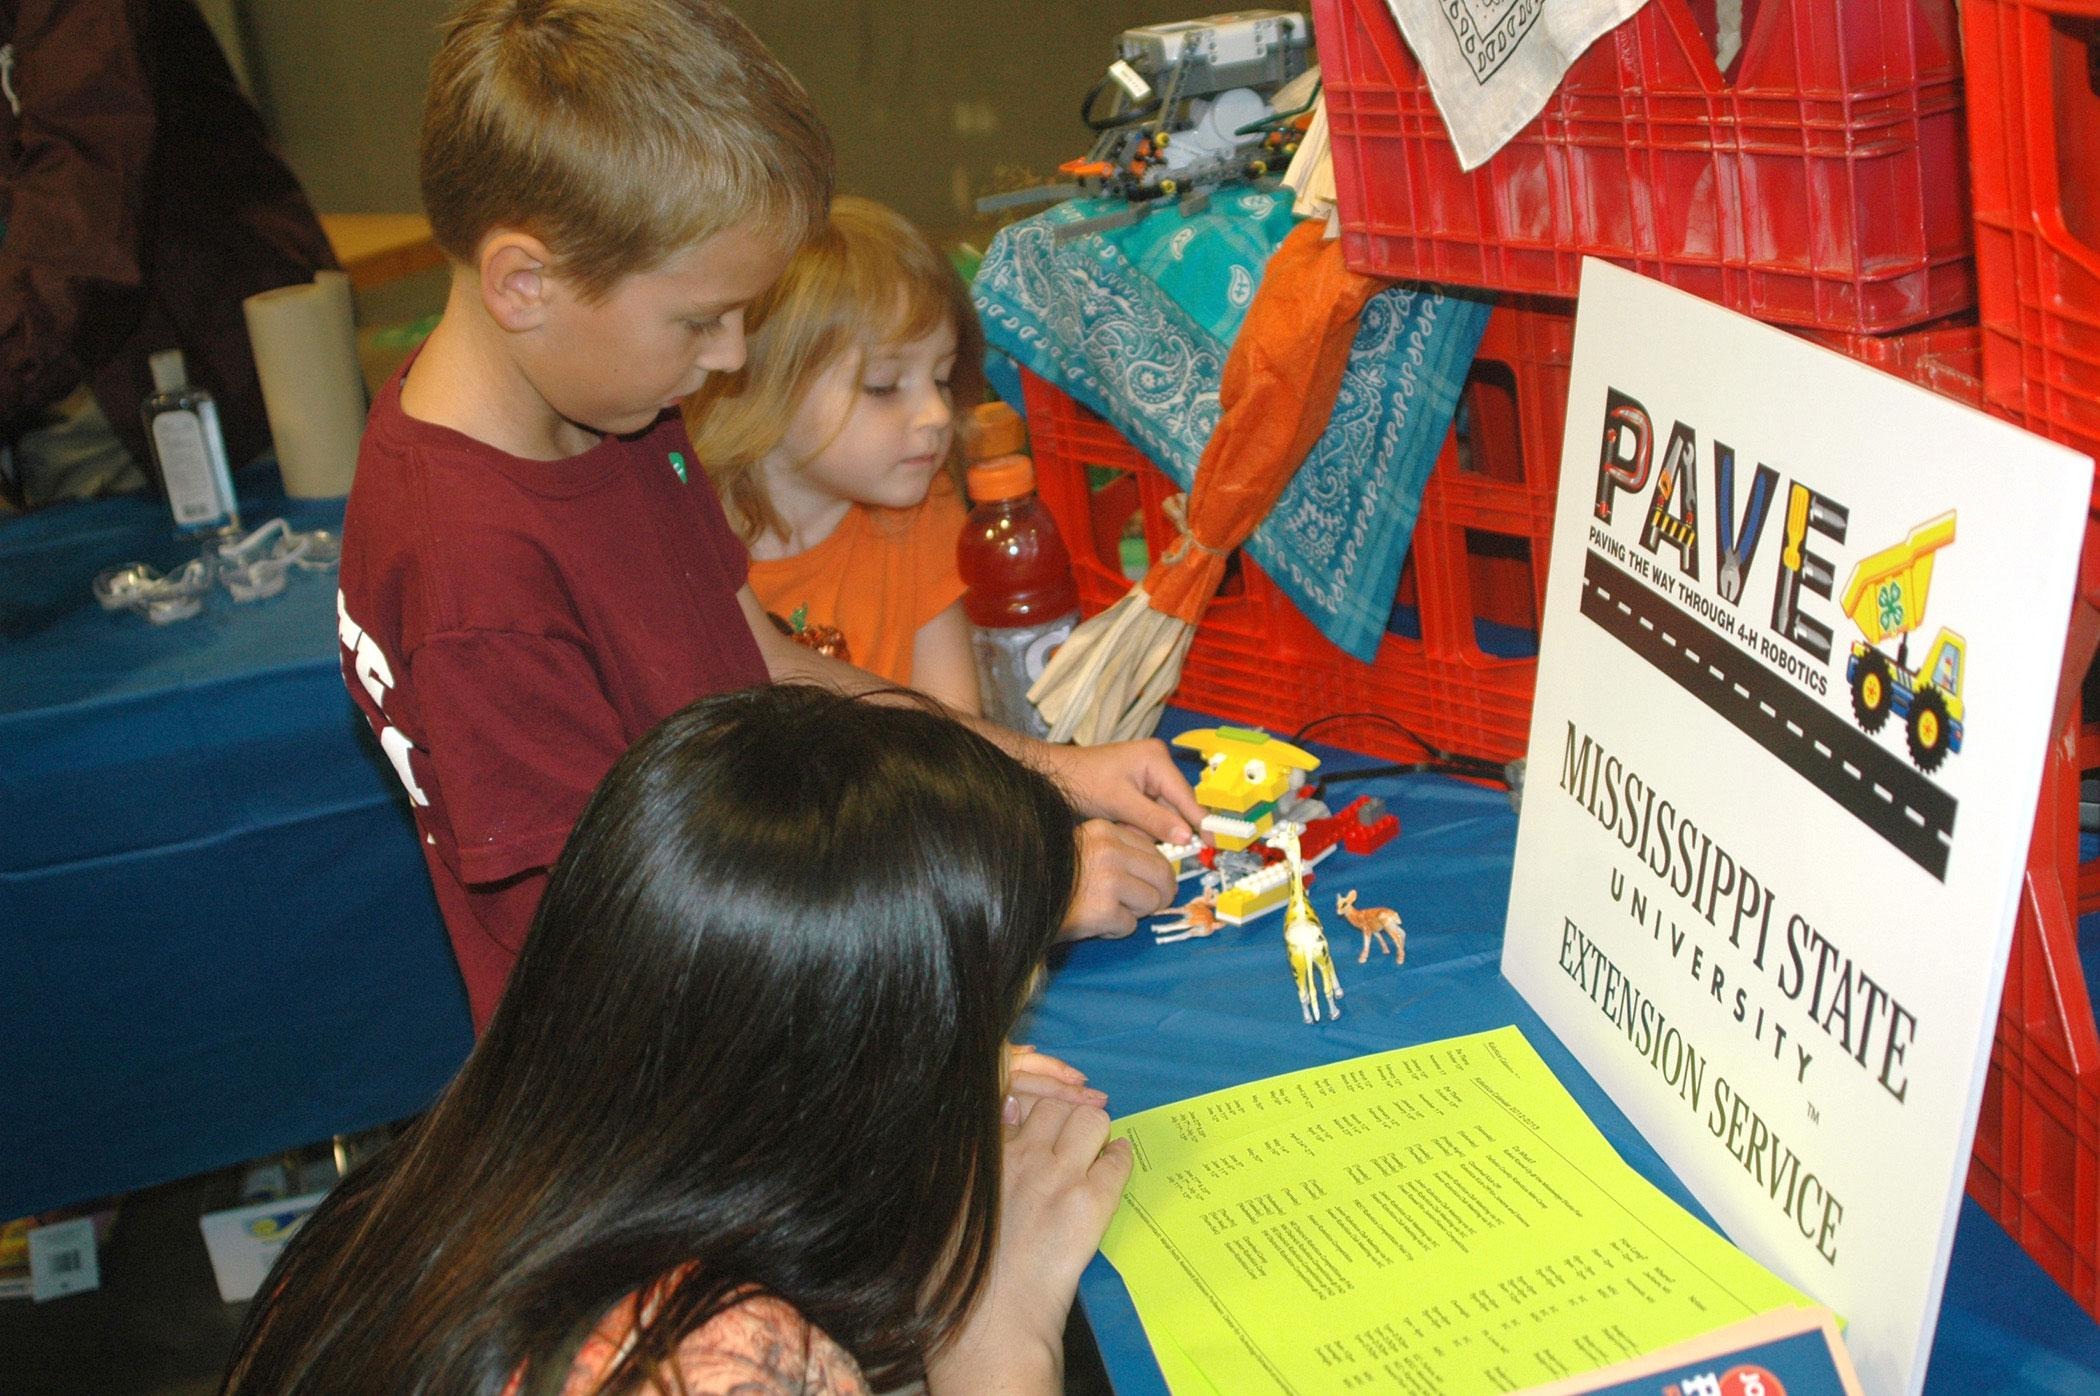 Monica Morel, Hancock County robotics club volunteer leader, helps Luke and Rebekah Schilling of Oktibbeha County with a robot during 4-H Day at the Mississippi State Fair in Jackson on Oct. 13. The robotics exhibit was one of several hands-on science activities available to visitors. (Photo by MSU Ag Communications/Susan Collins-Smith)